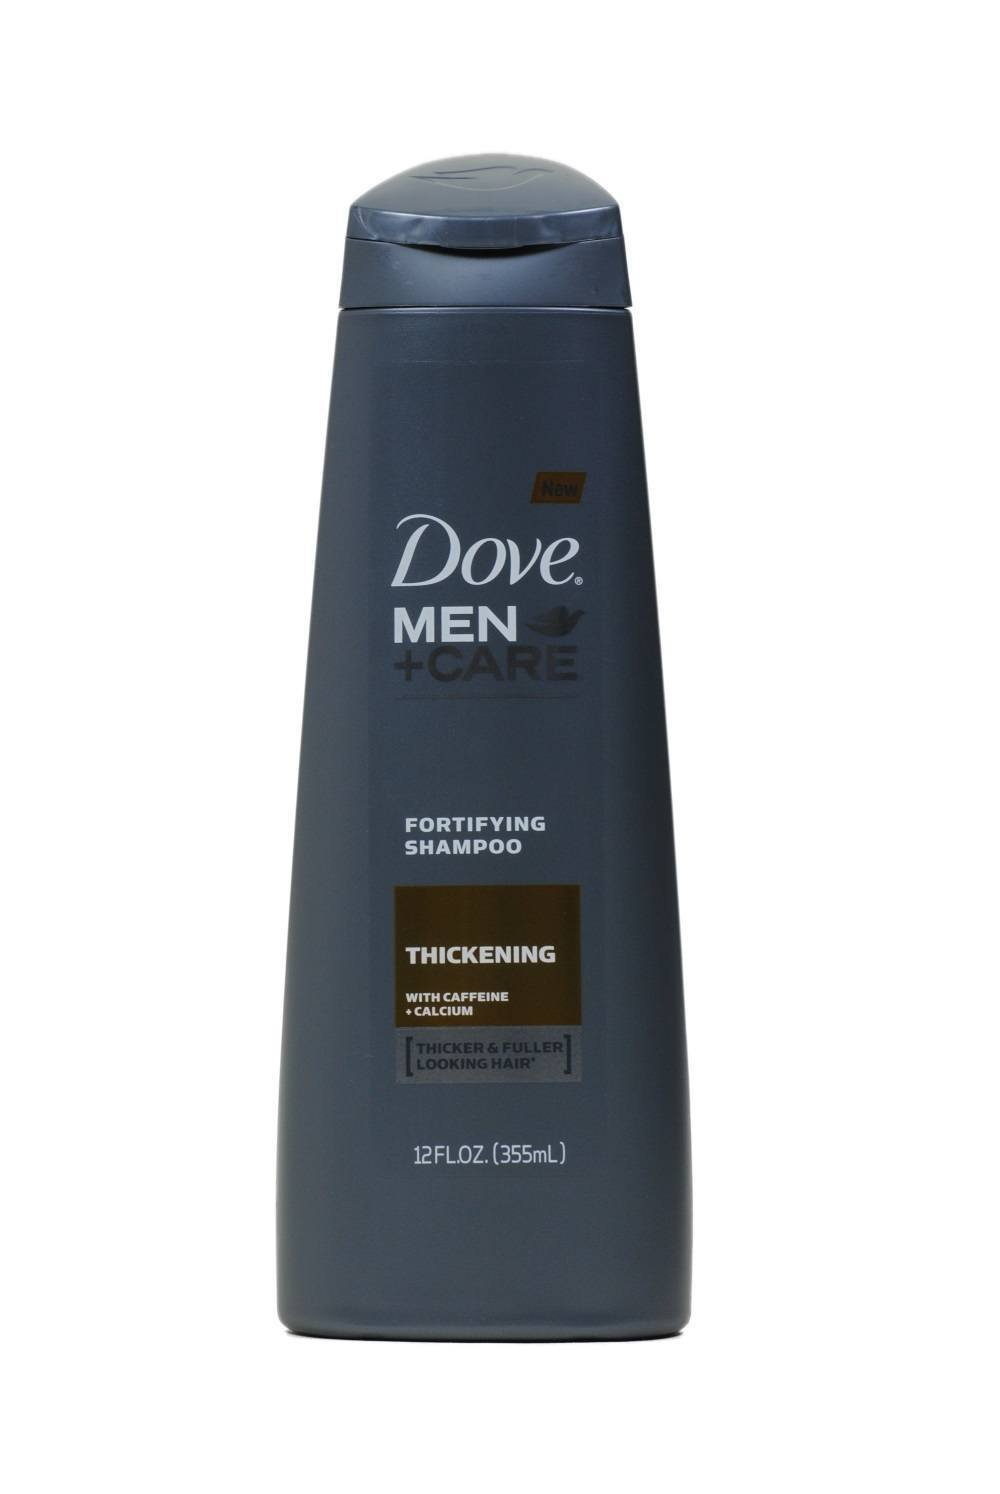 Dove Men+Care 9 in 9 Shampoo and Conditioner, Thick and Strong 99 Ounce